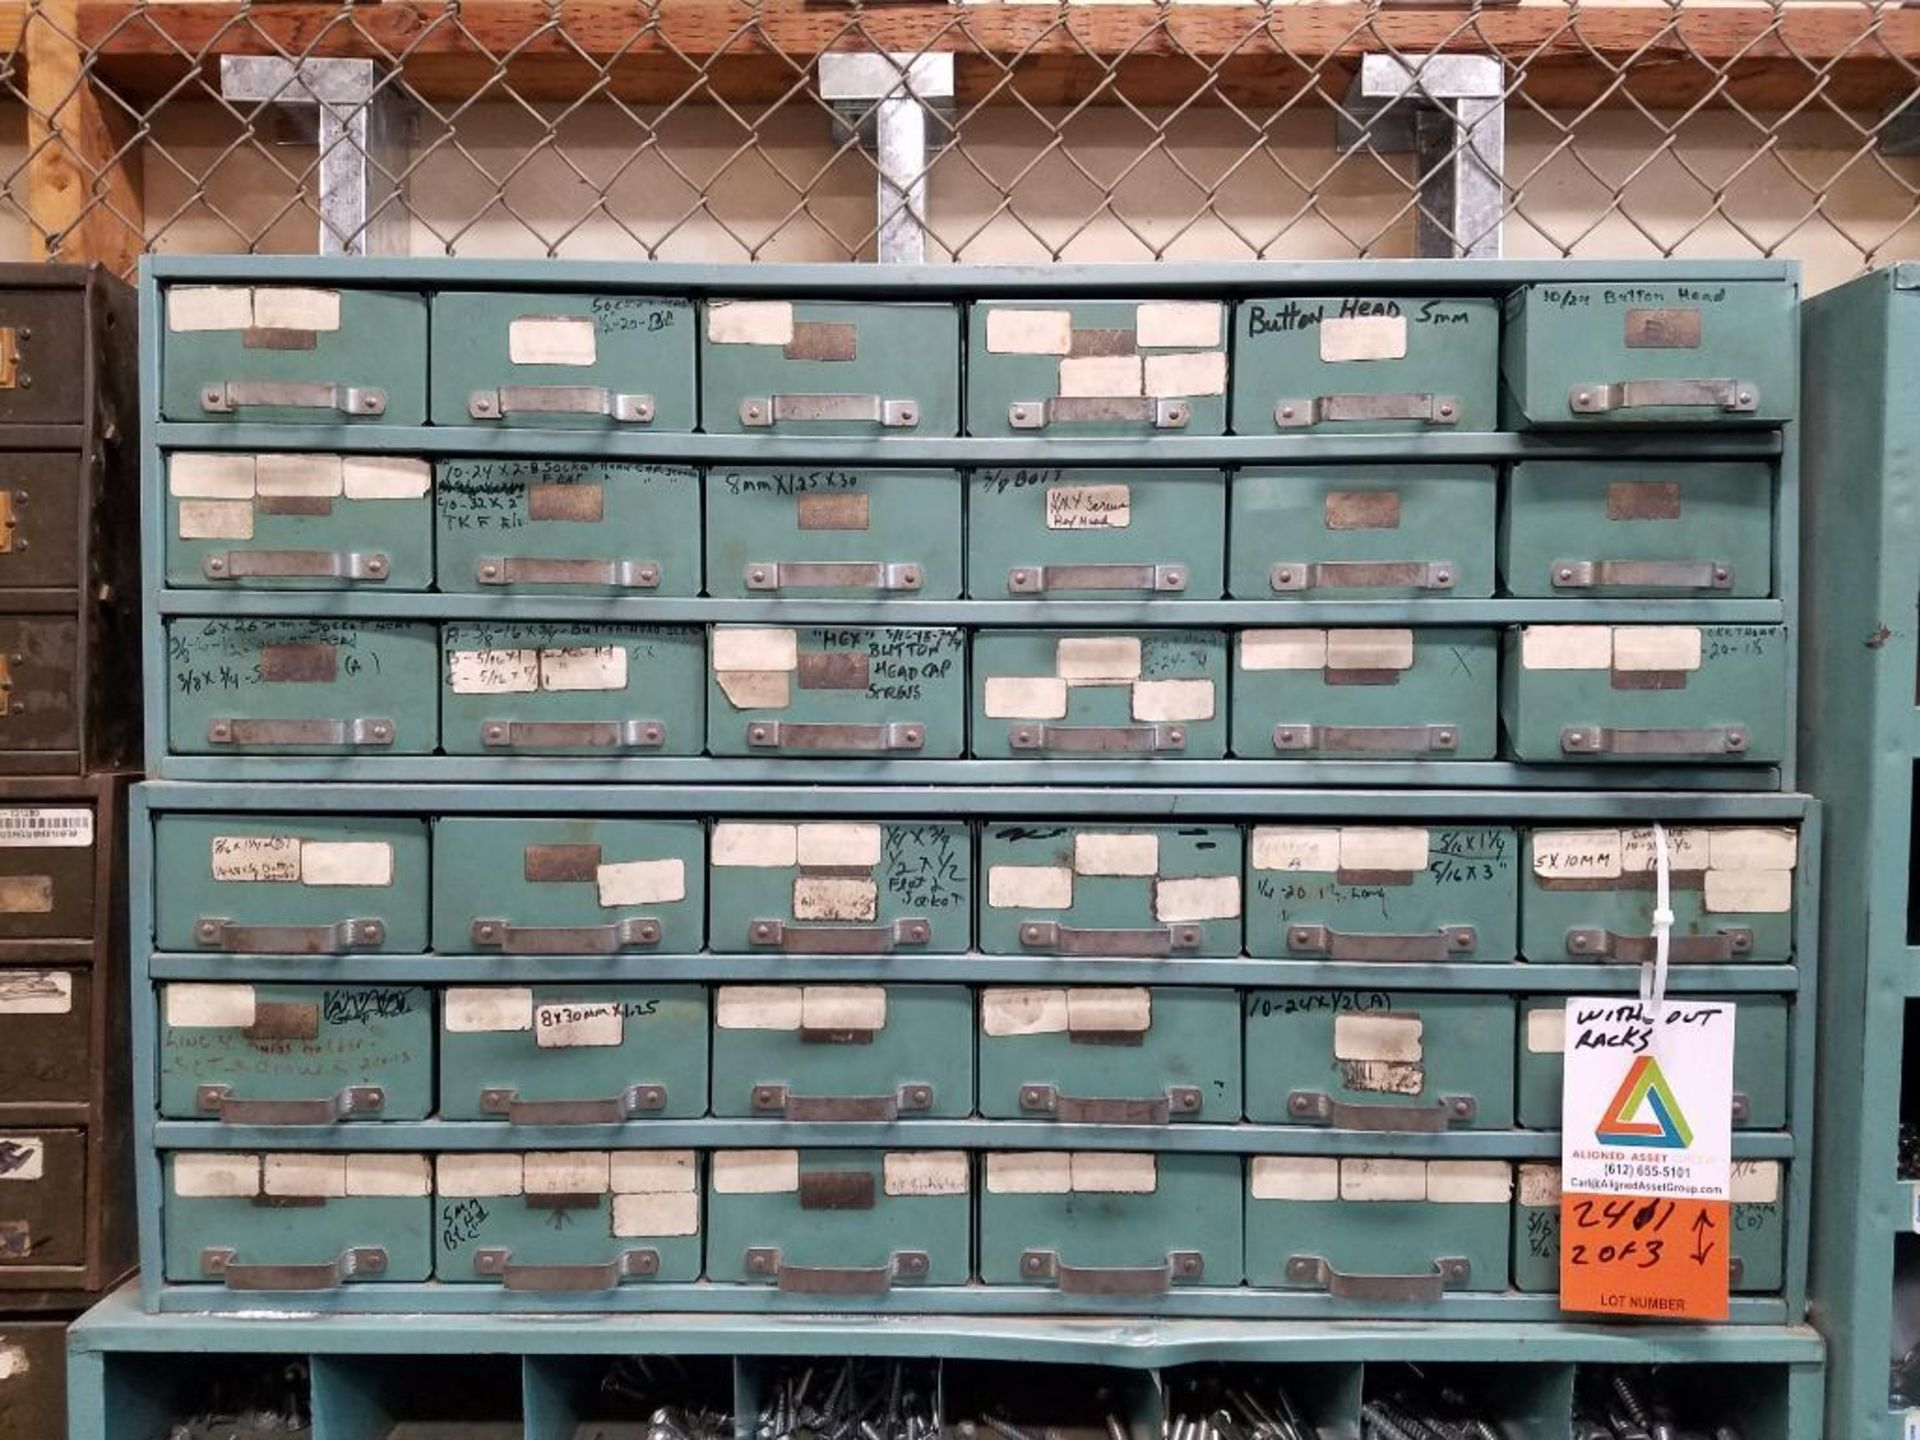 various nuts, bolts, screws, and pipes, storage units not included - Image 5 of 10